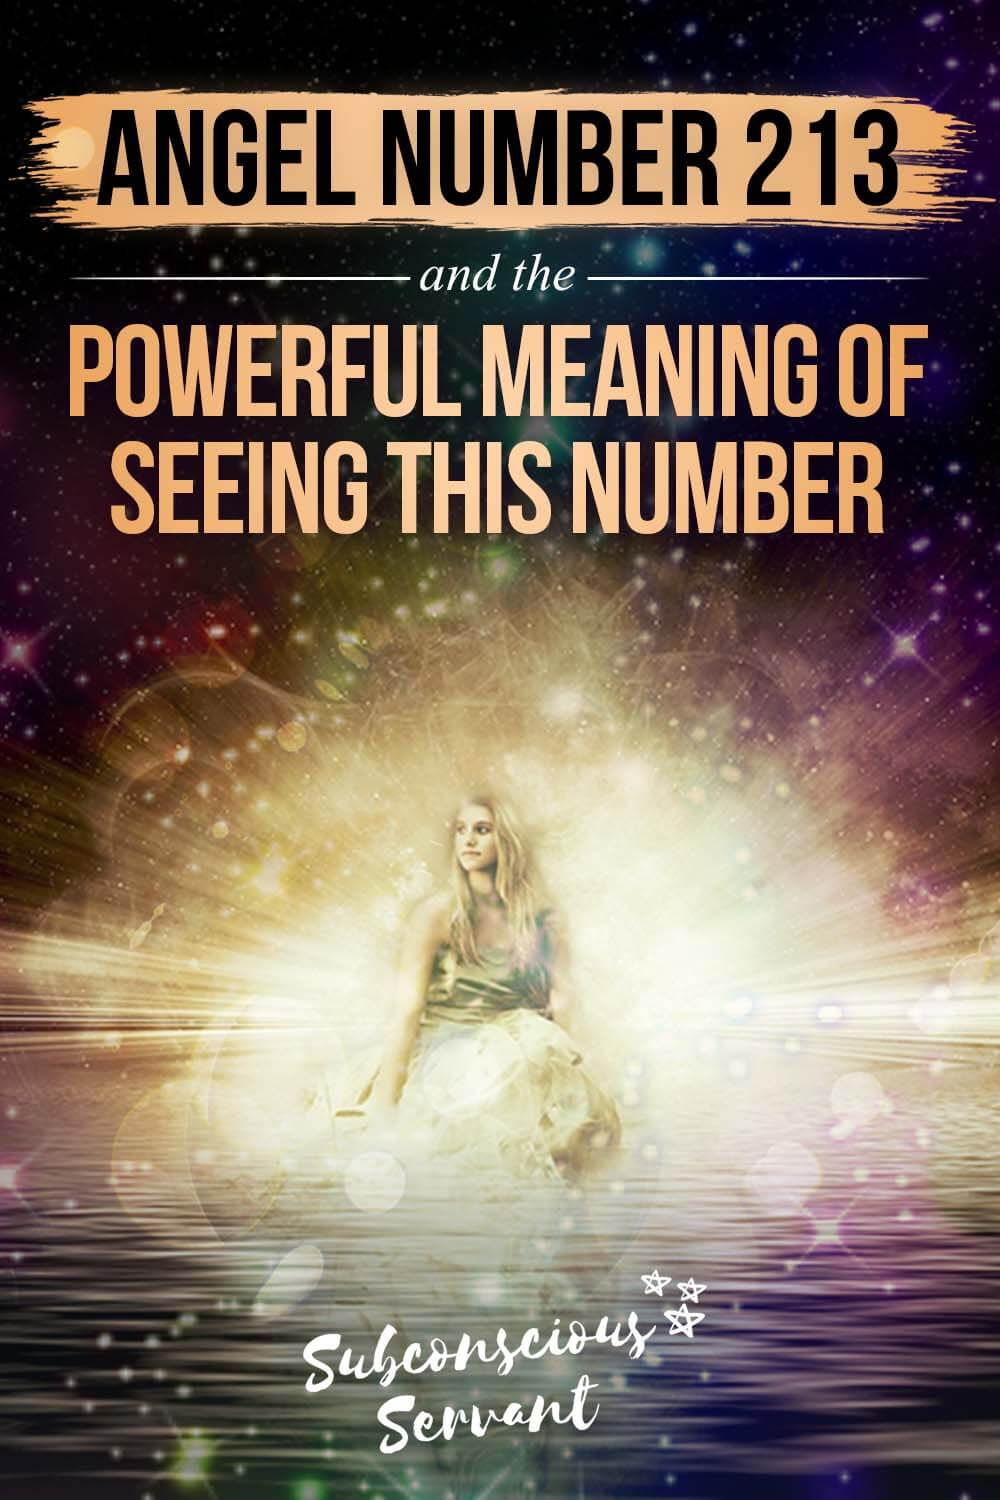 Angel Number 213 & The Important Meaning Of Seeing This Number